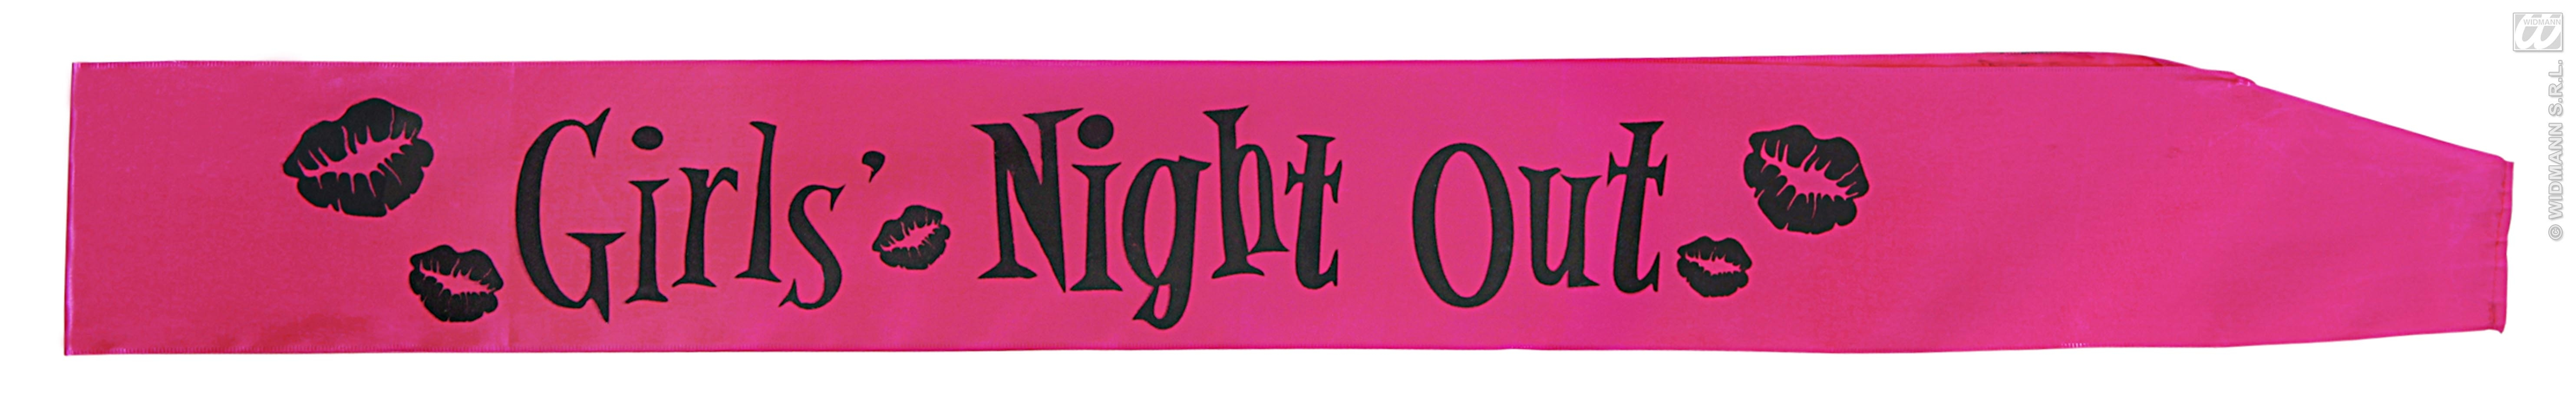 8853G Girls Night Out Sash